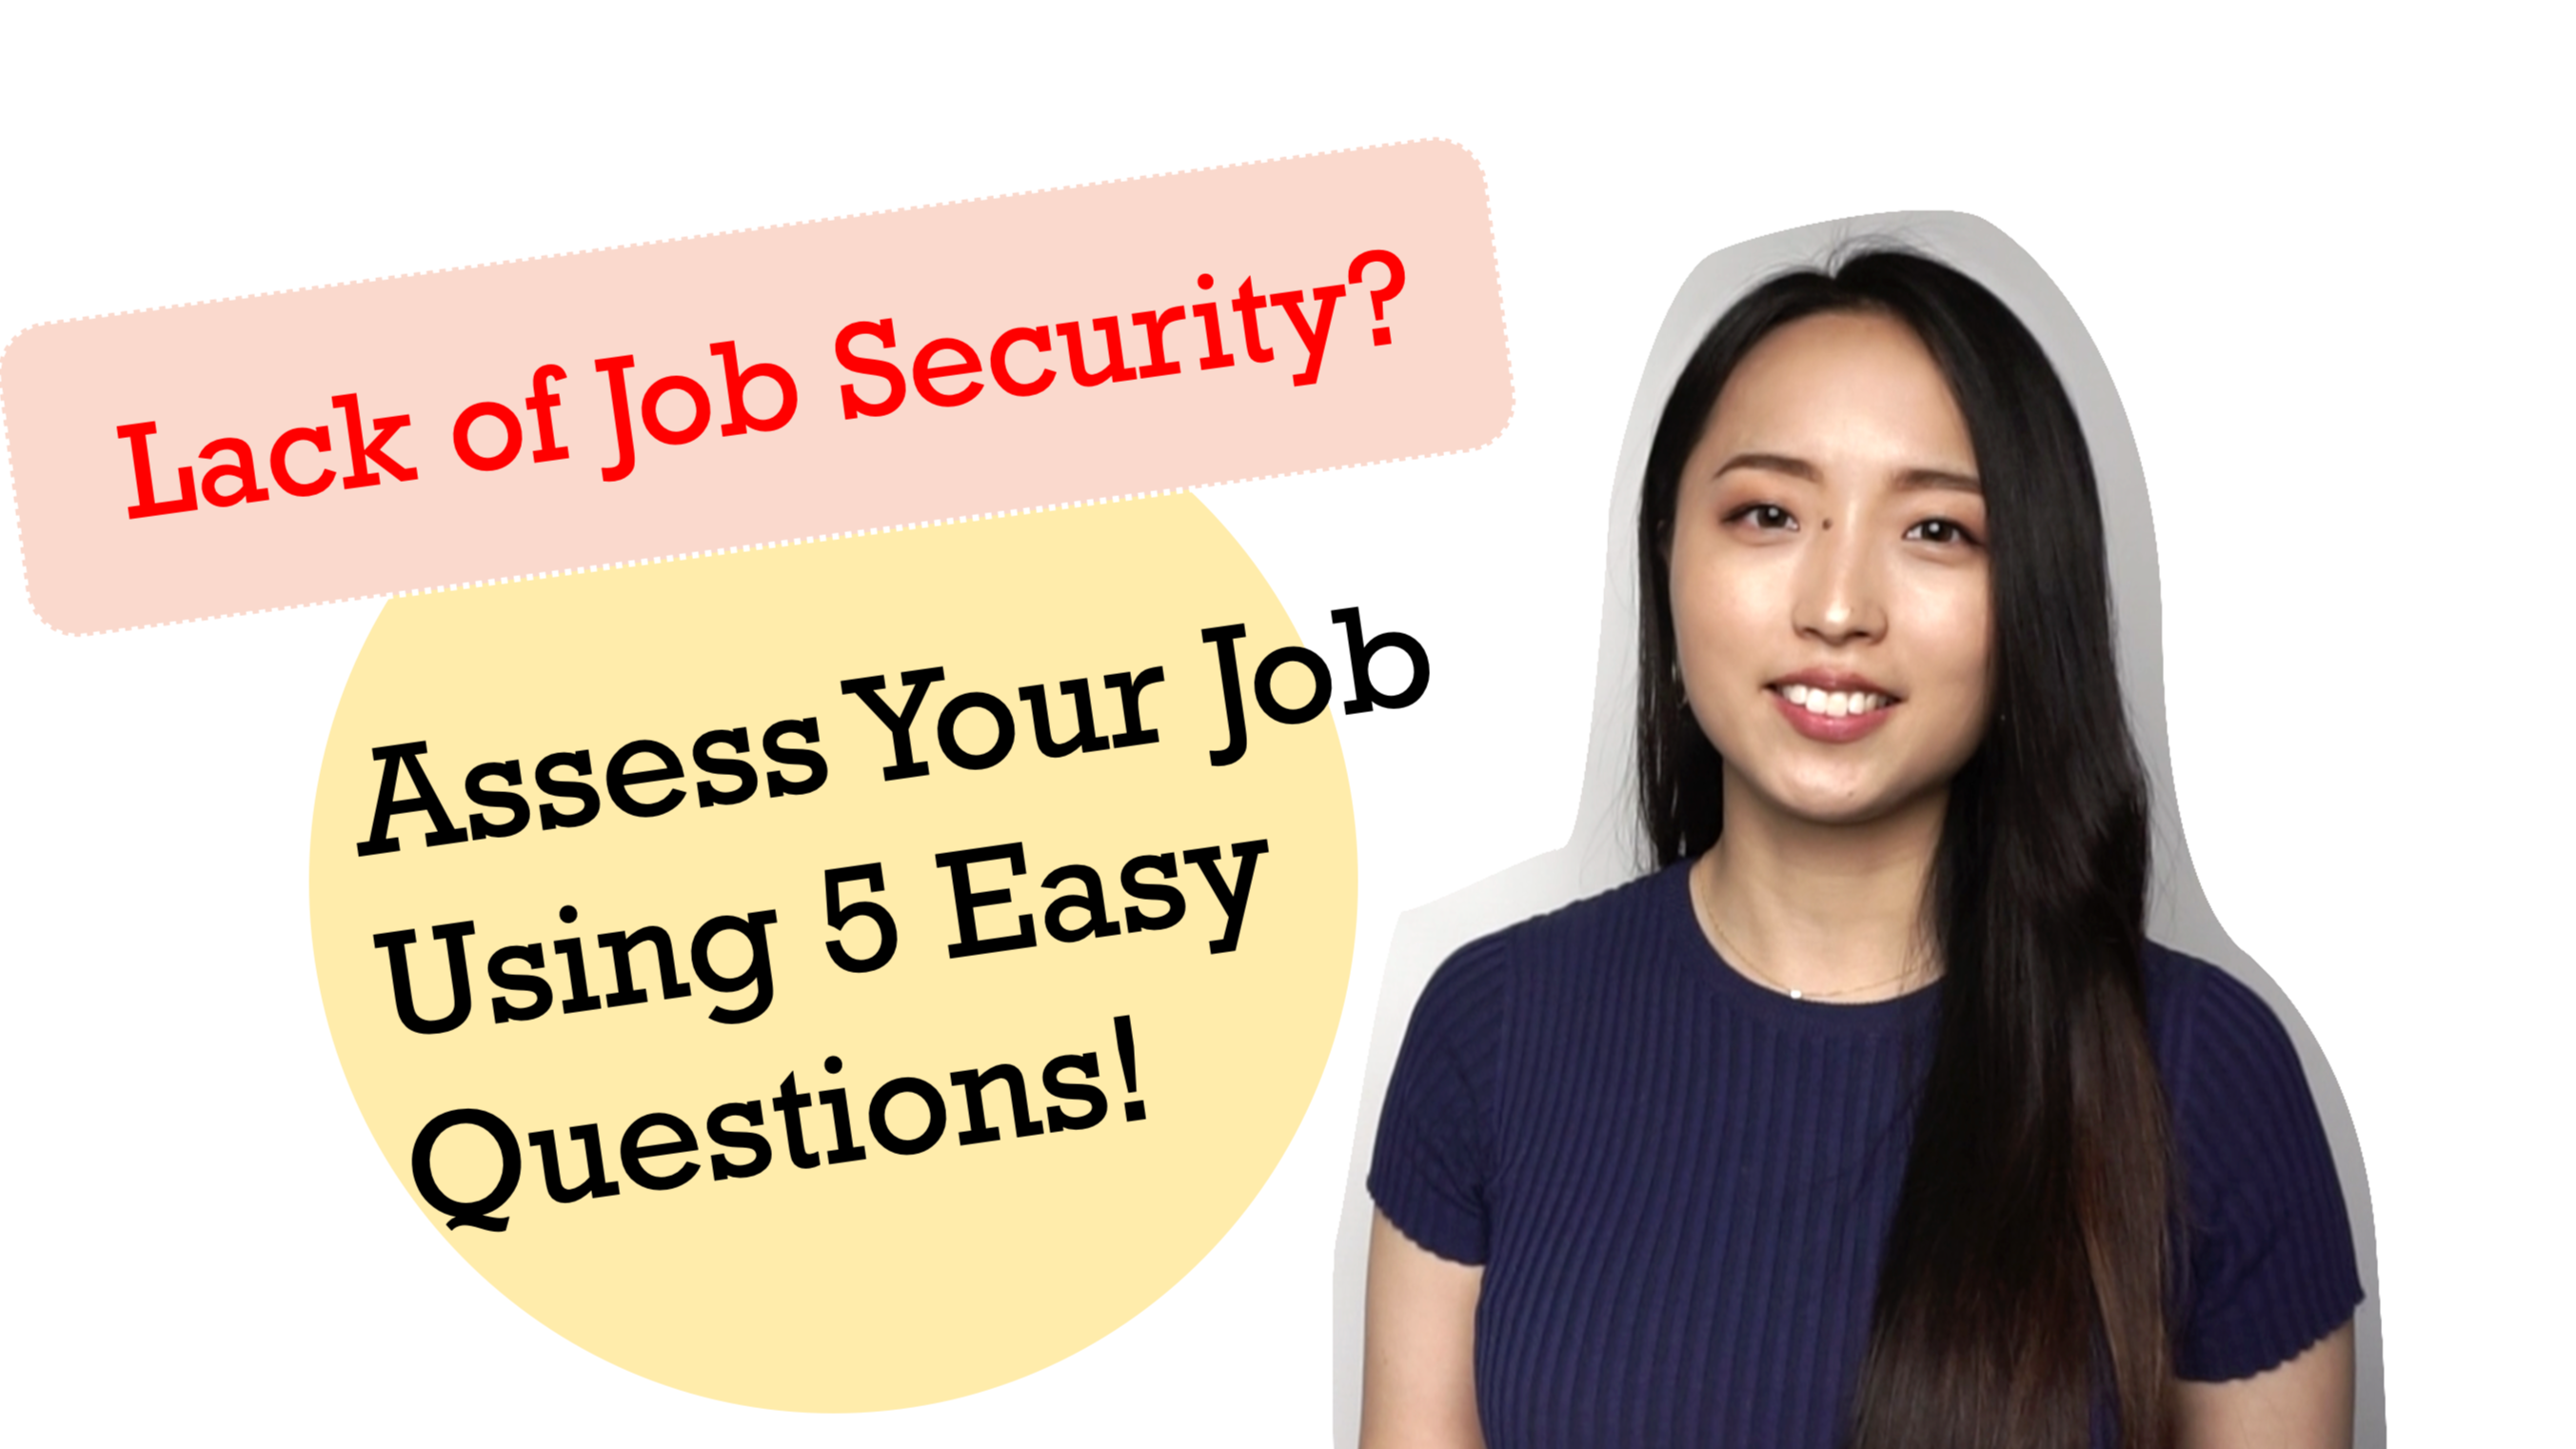 5 Questions to Assess Your Job Security!